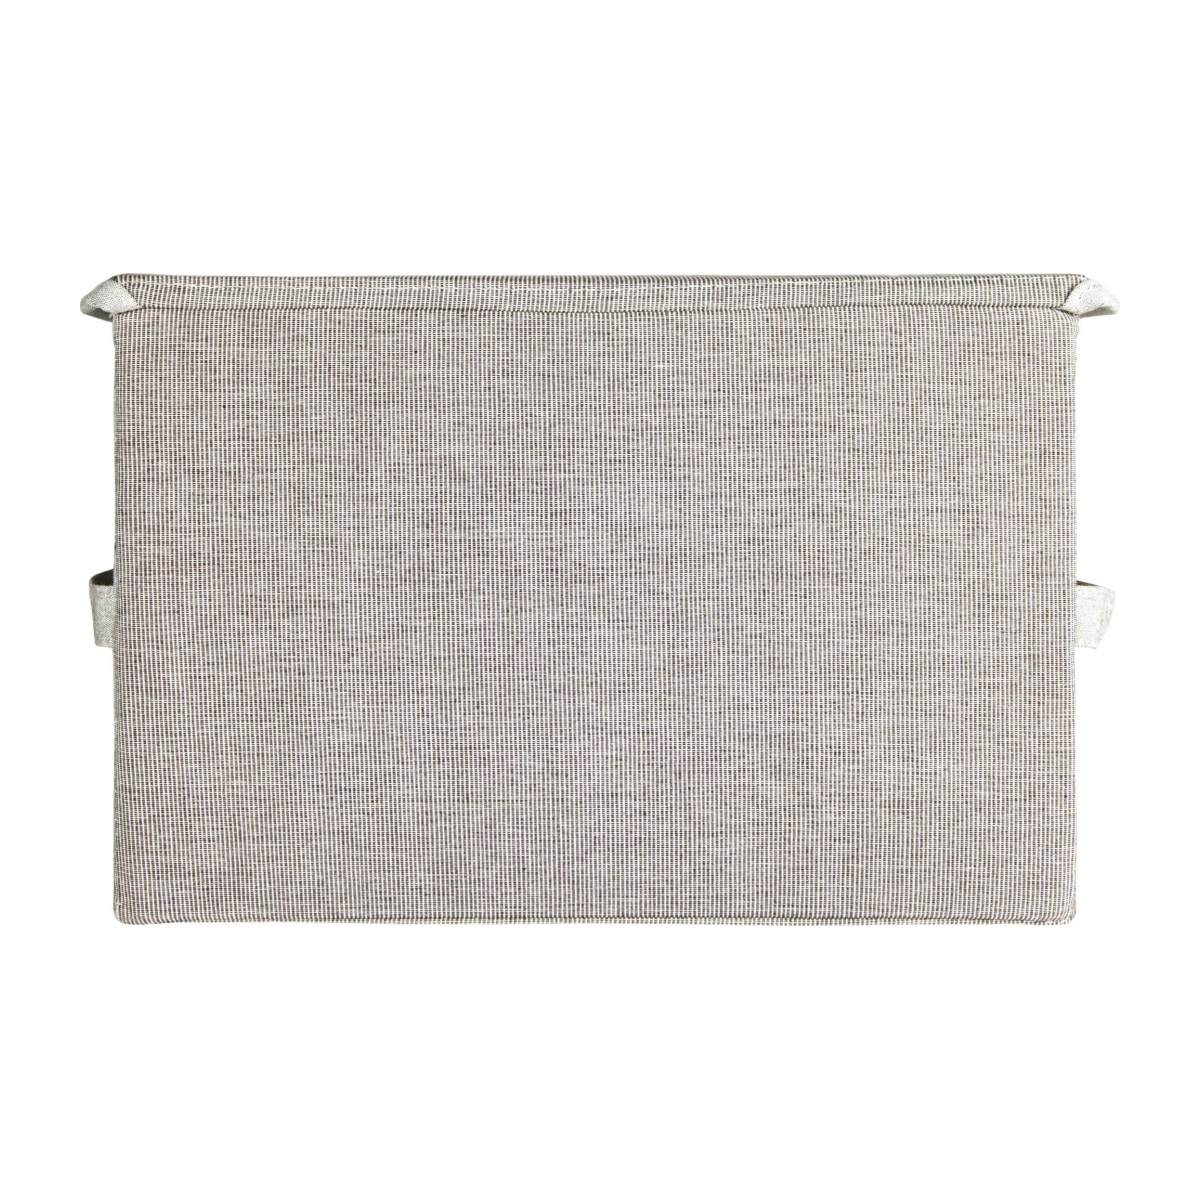 Large Storage basket, grey fabric and bamboo n°4